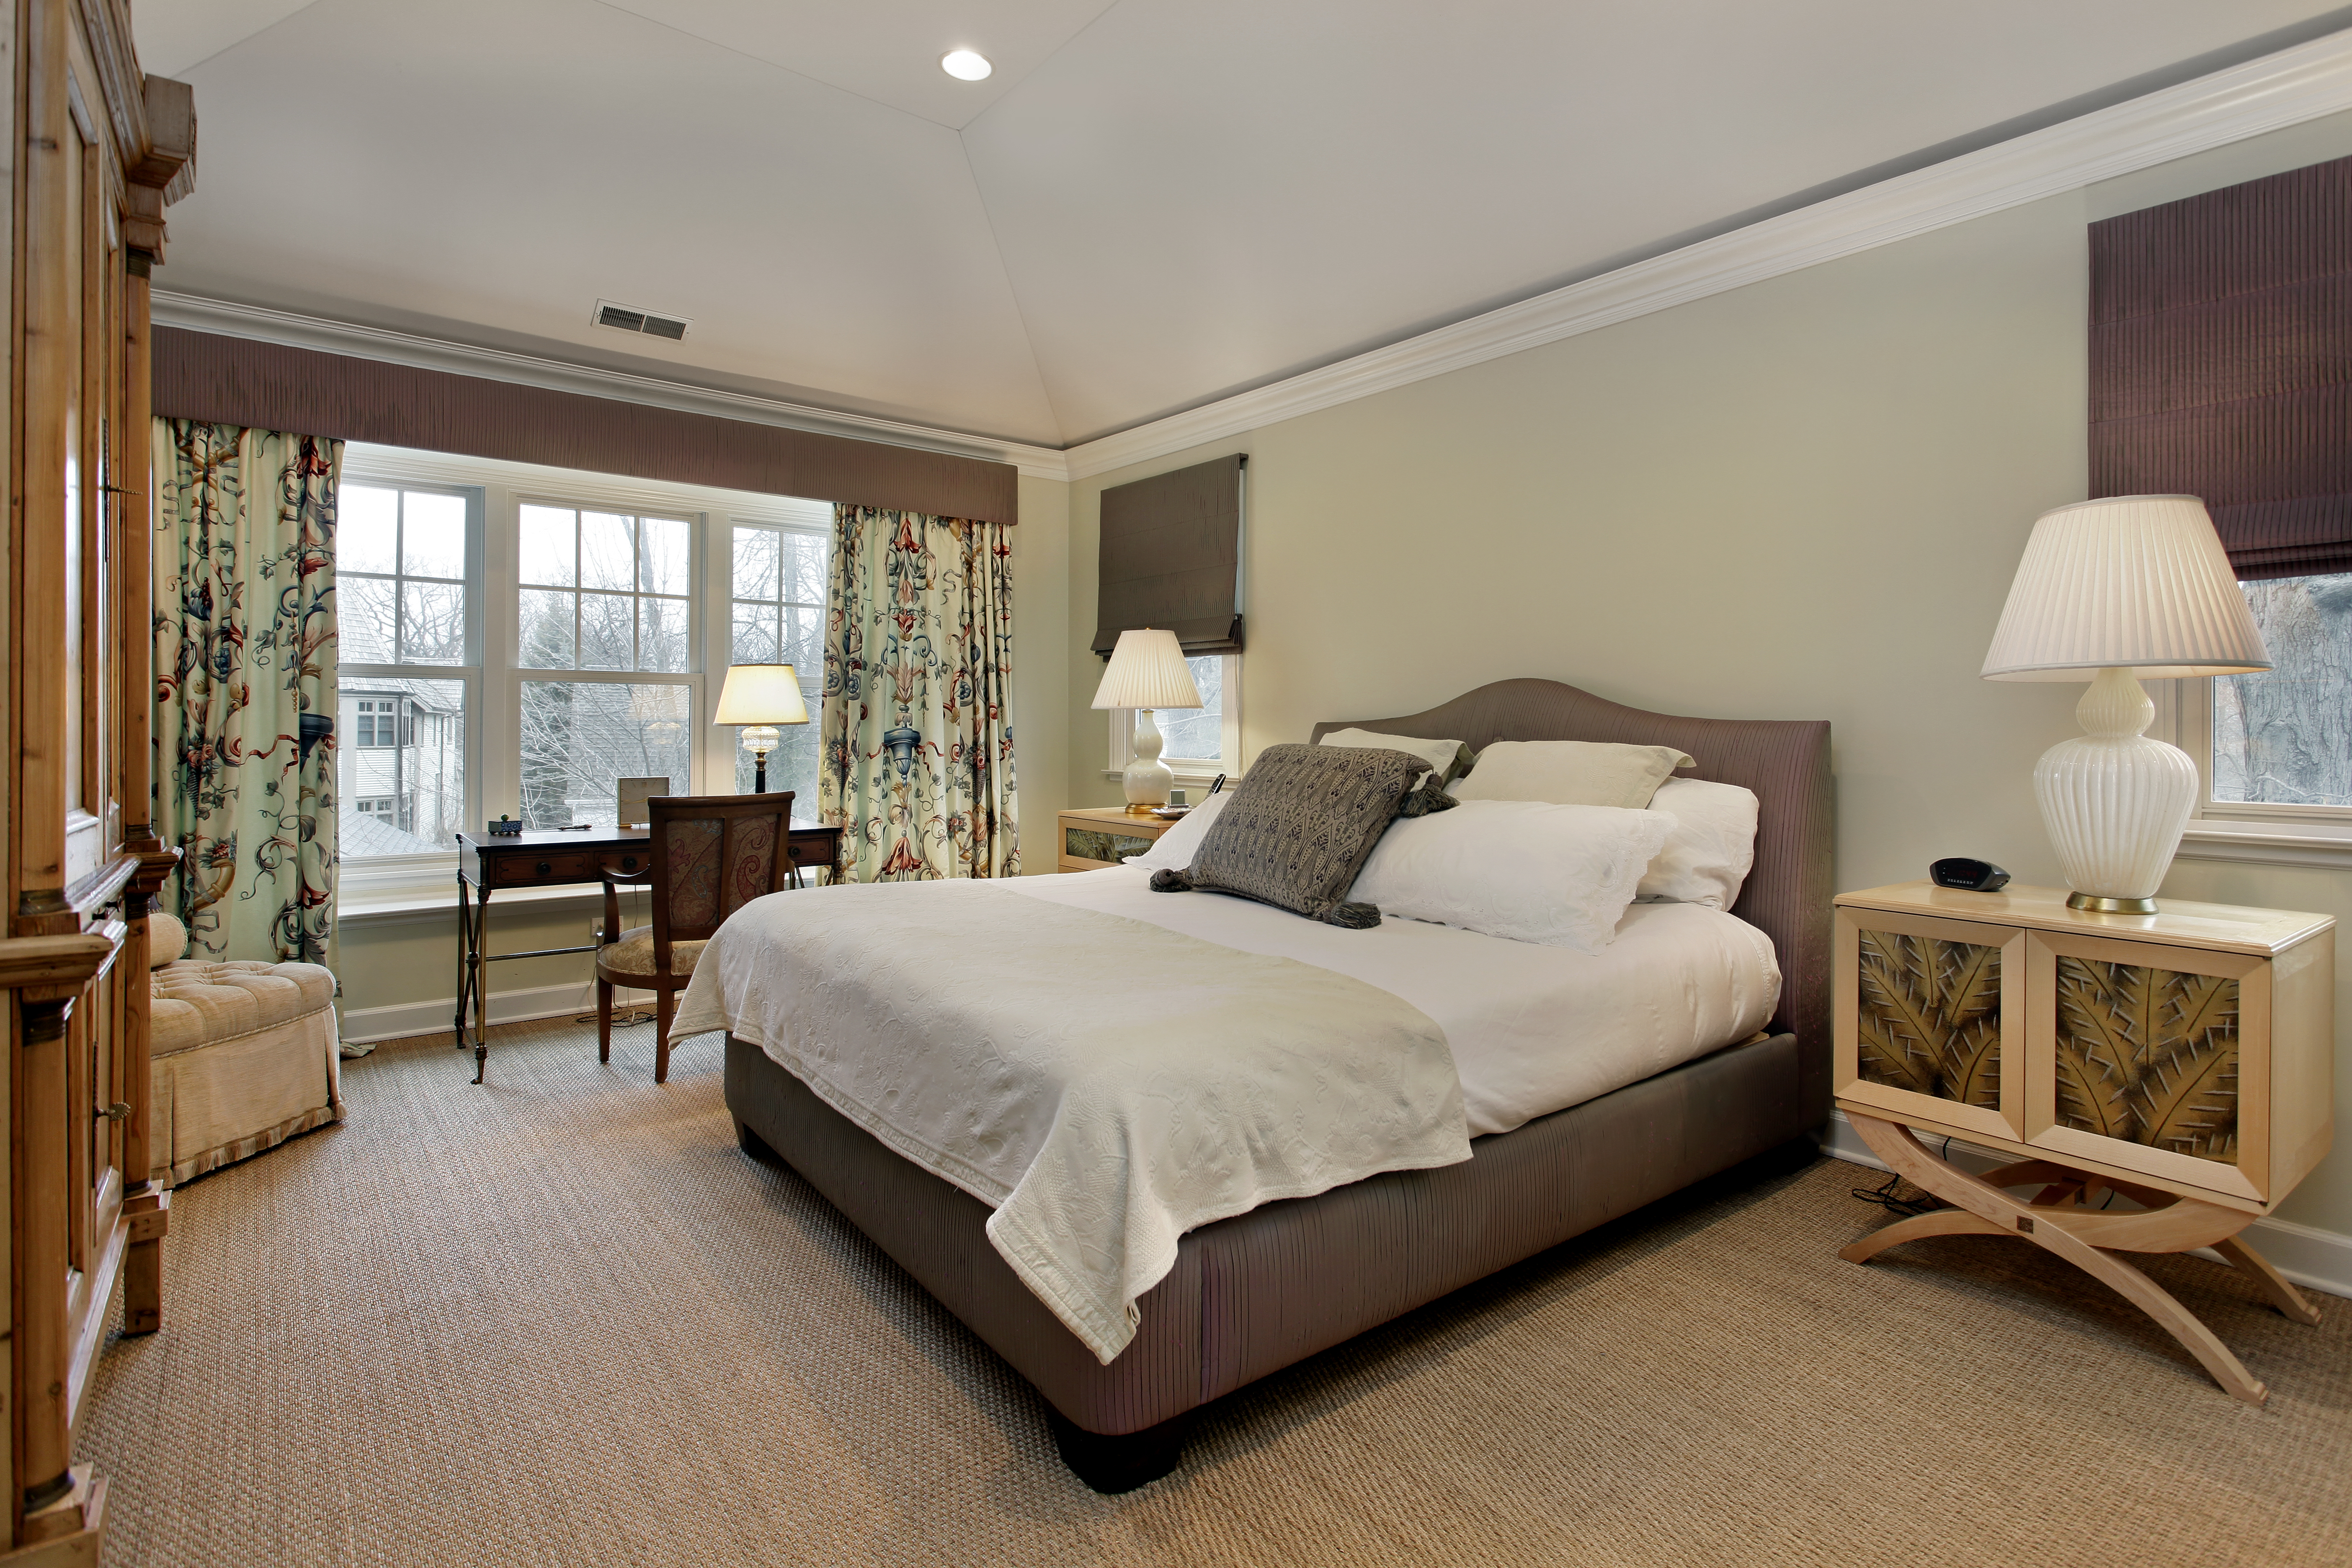 15 Ways to Make Your Tray Ceiling a Focal Point